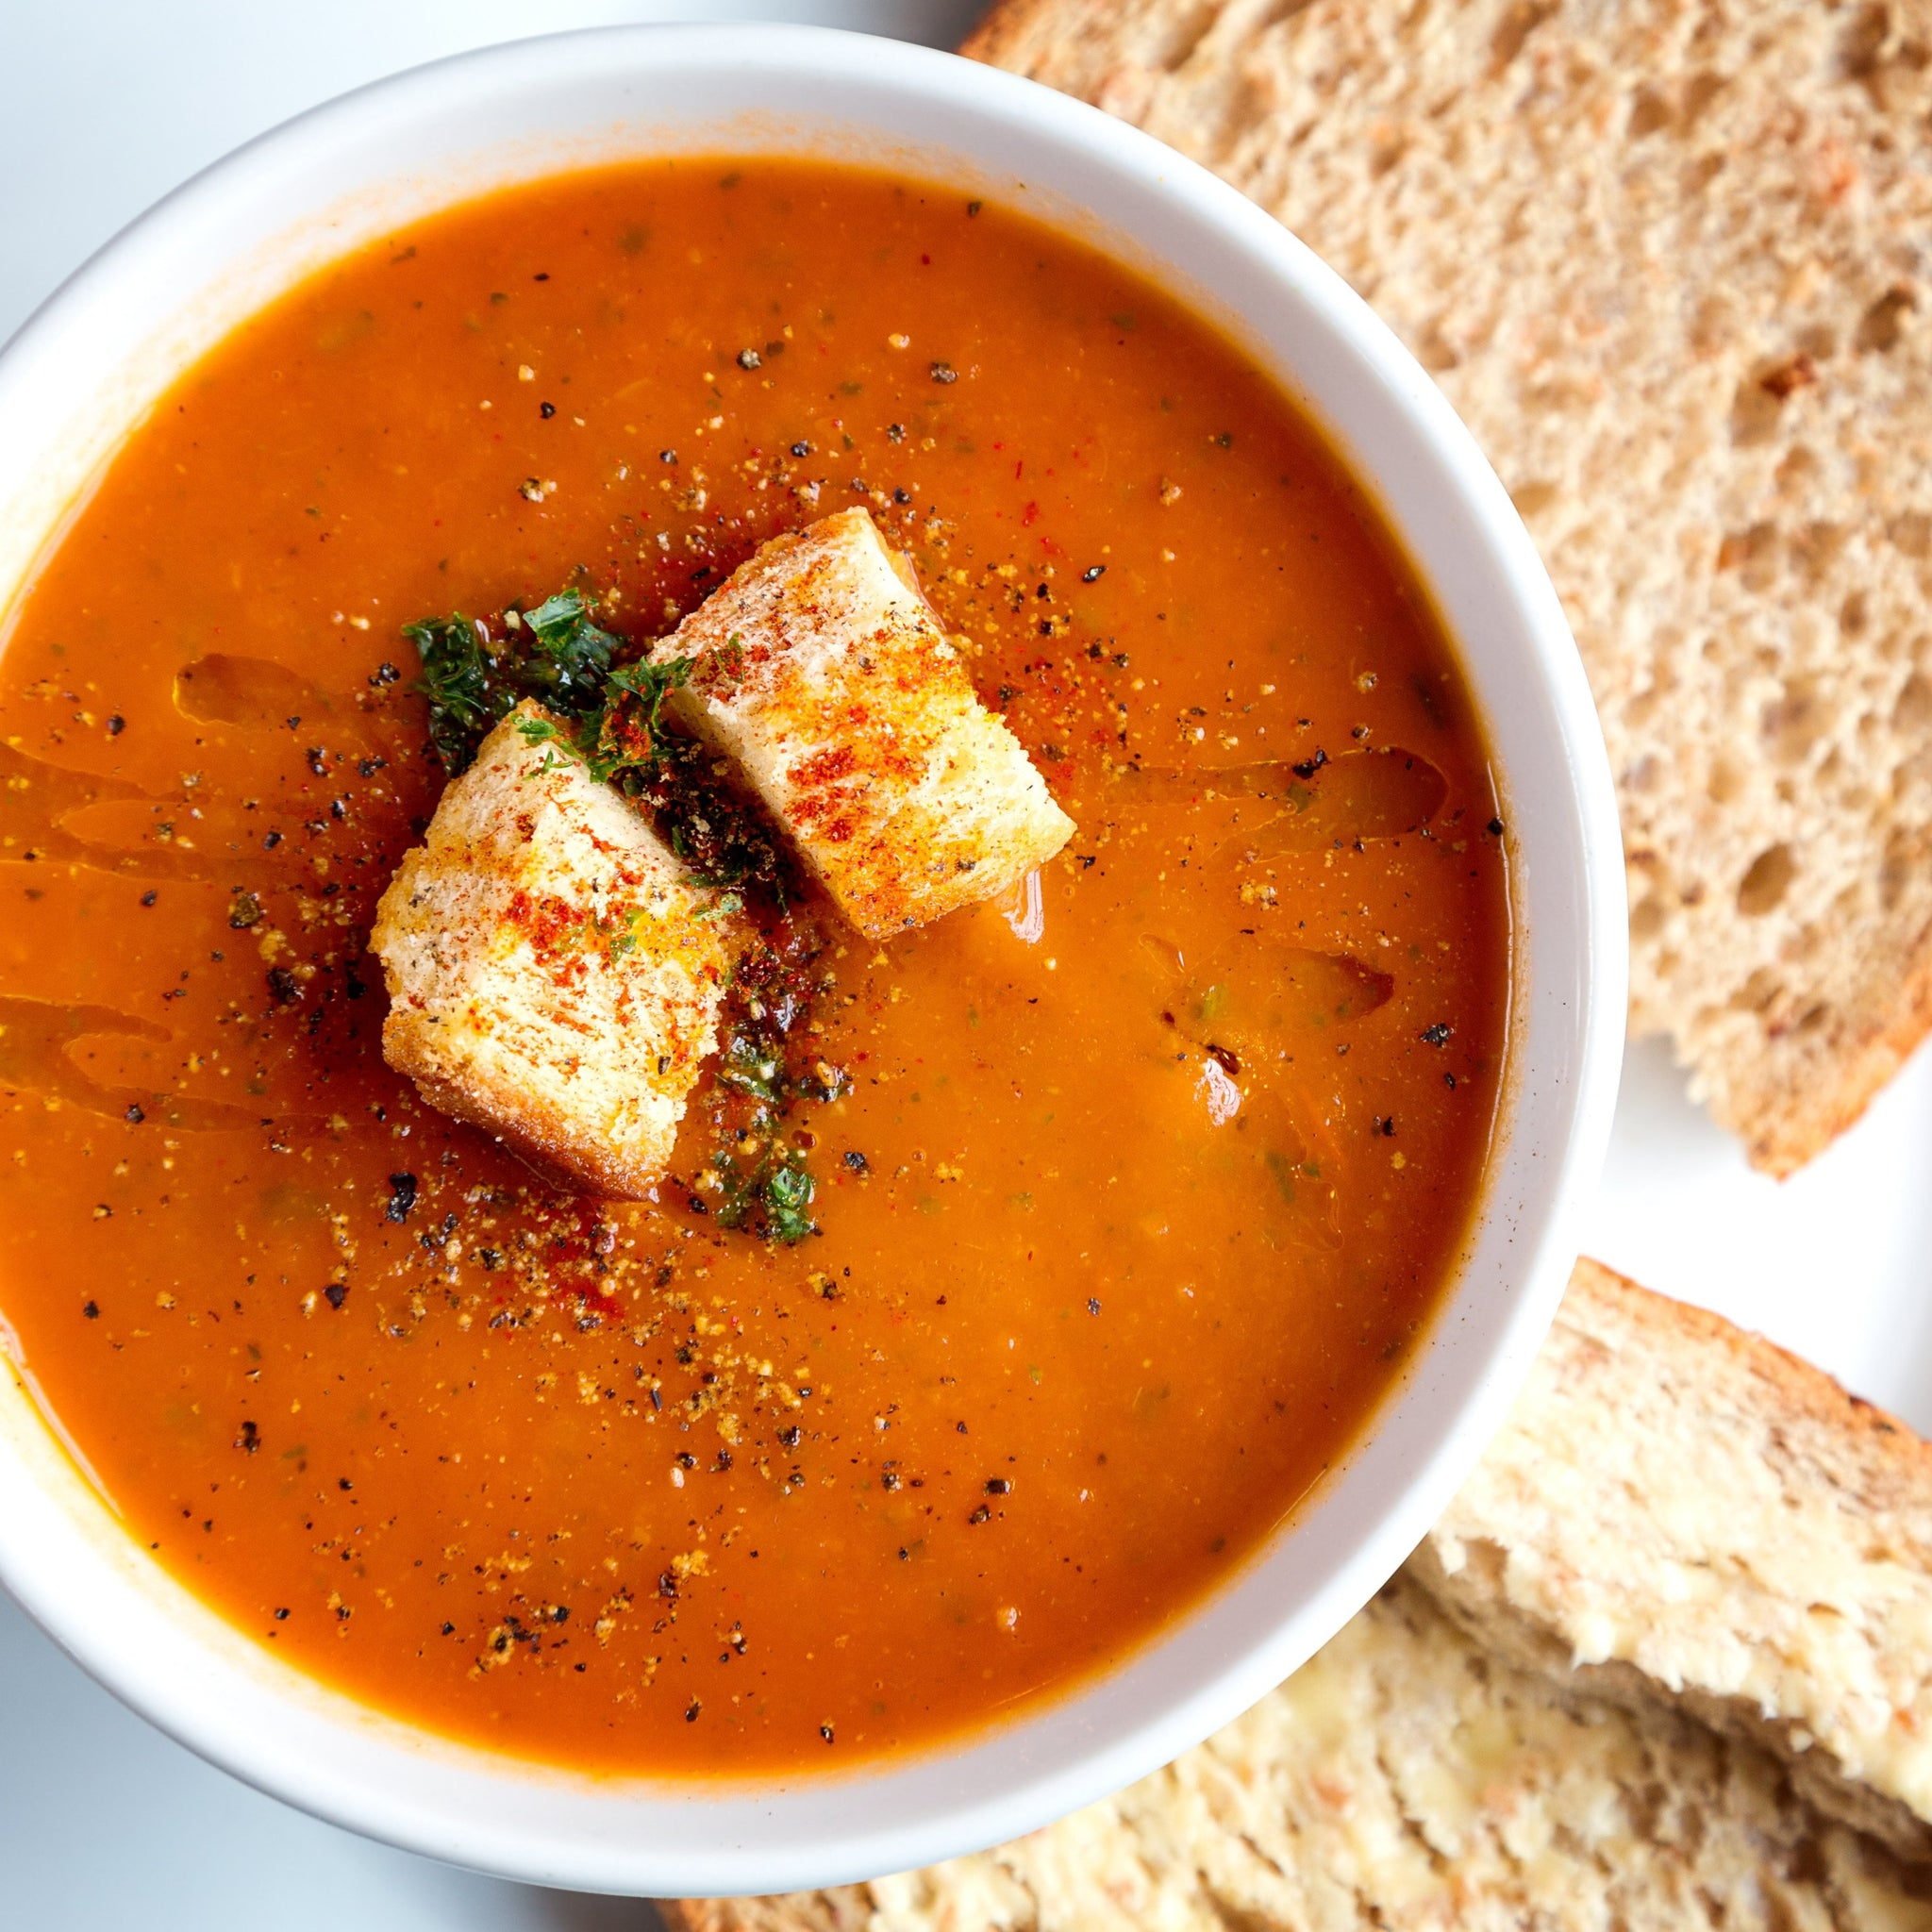 Soup & Bread (SERVES 2)